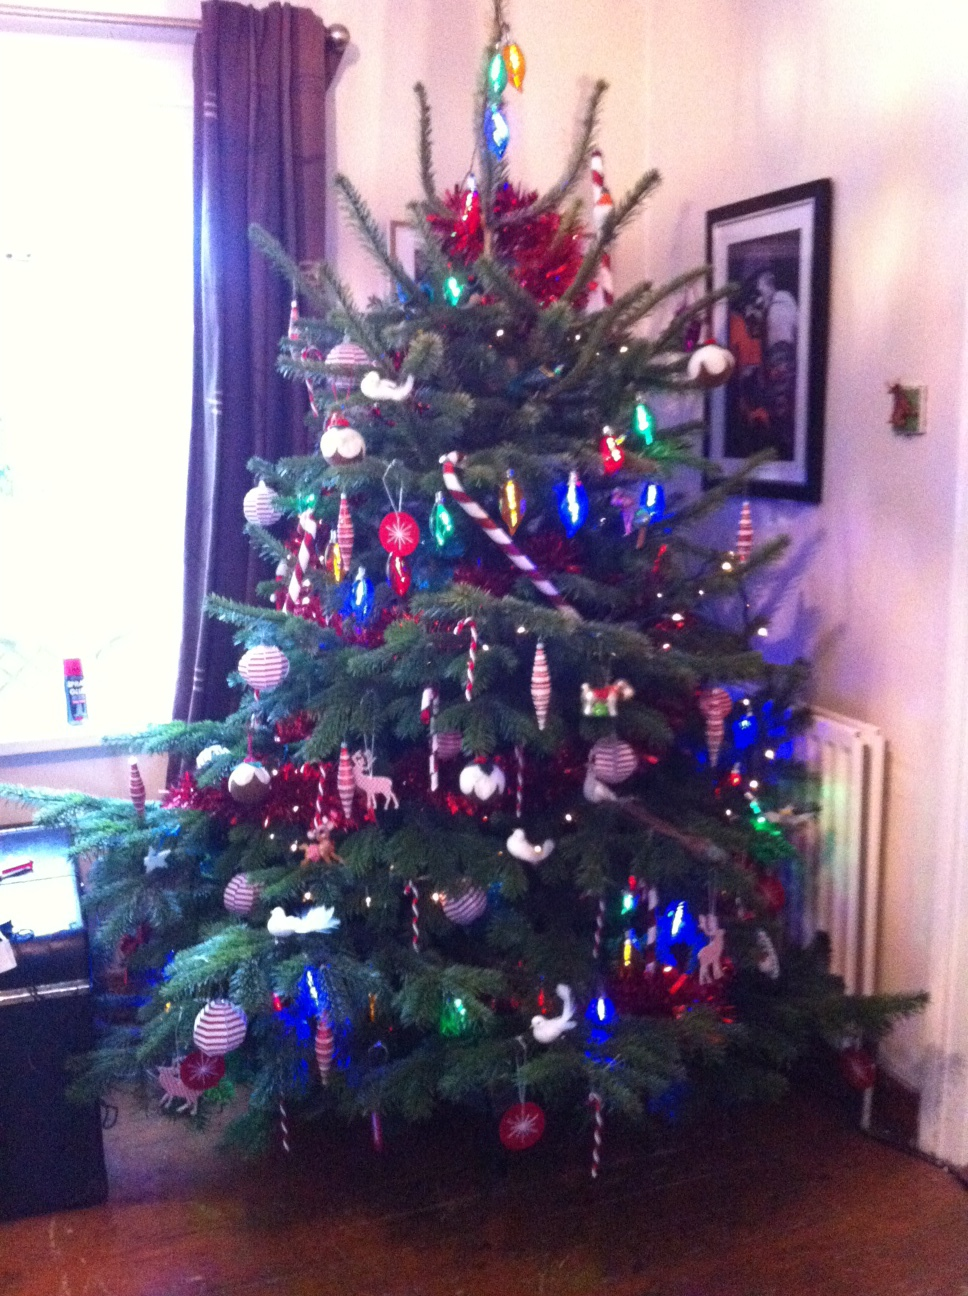 £25 Real Christmas Tree from Ikea, Belfast- Comes With £20 Voucher to spend in January!